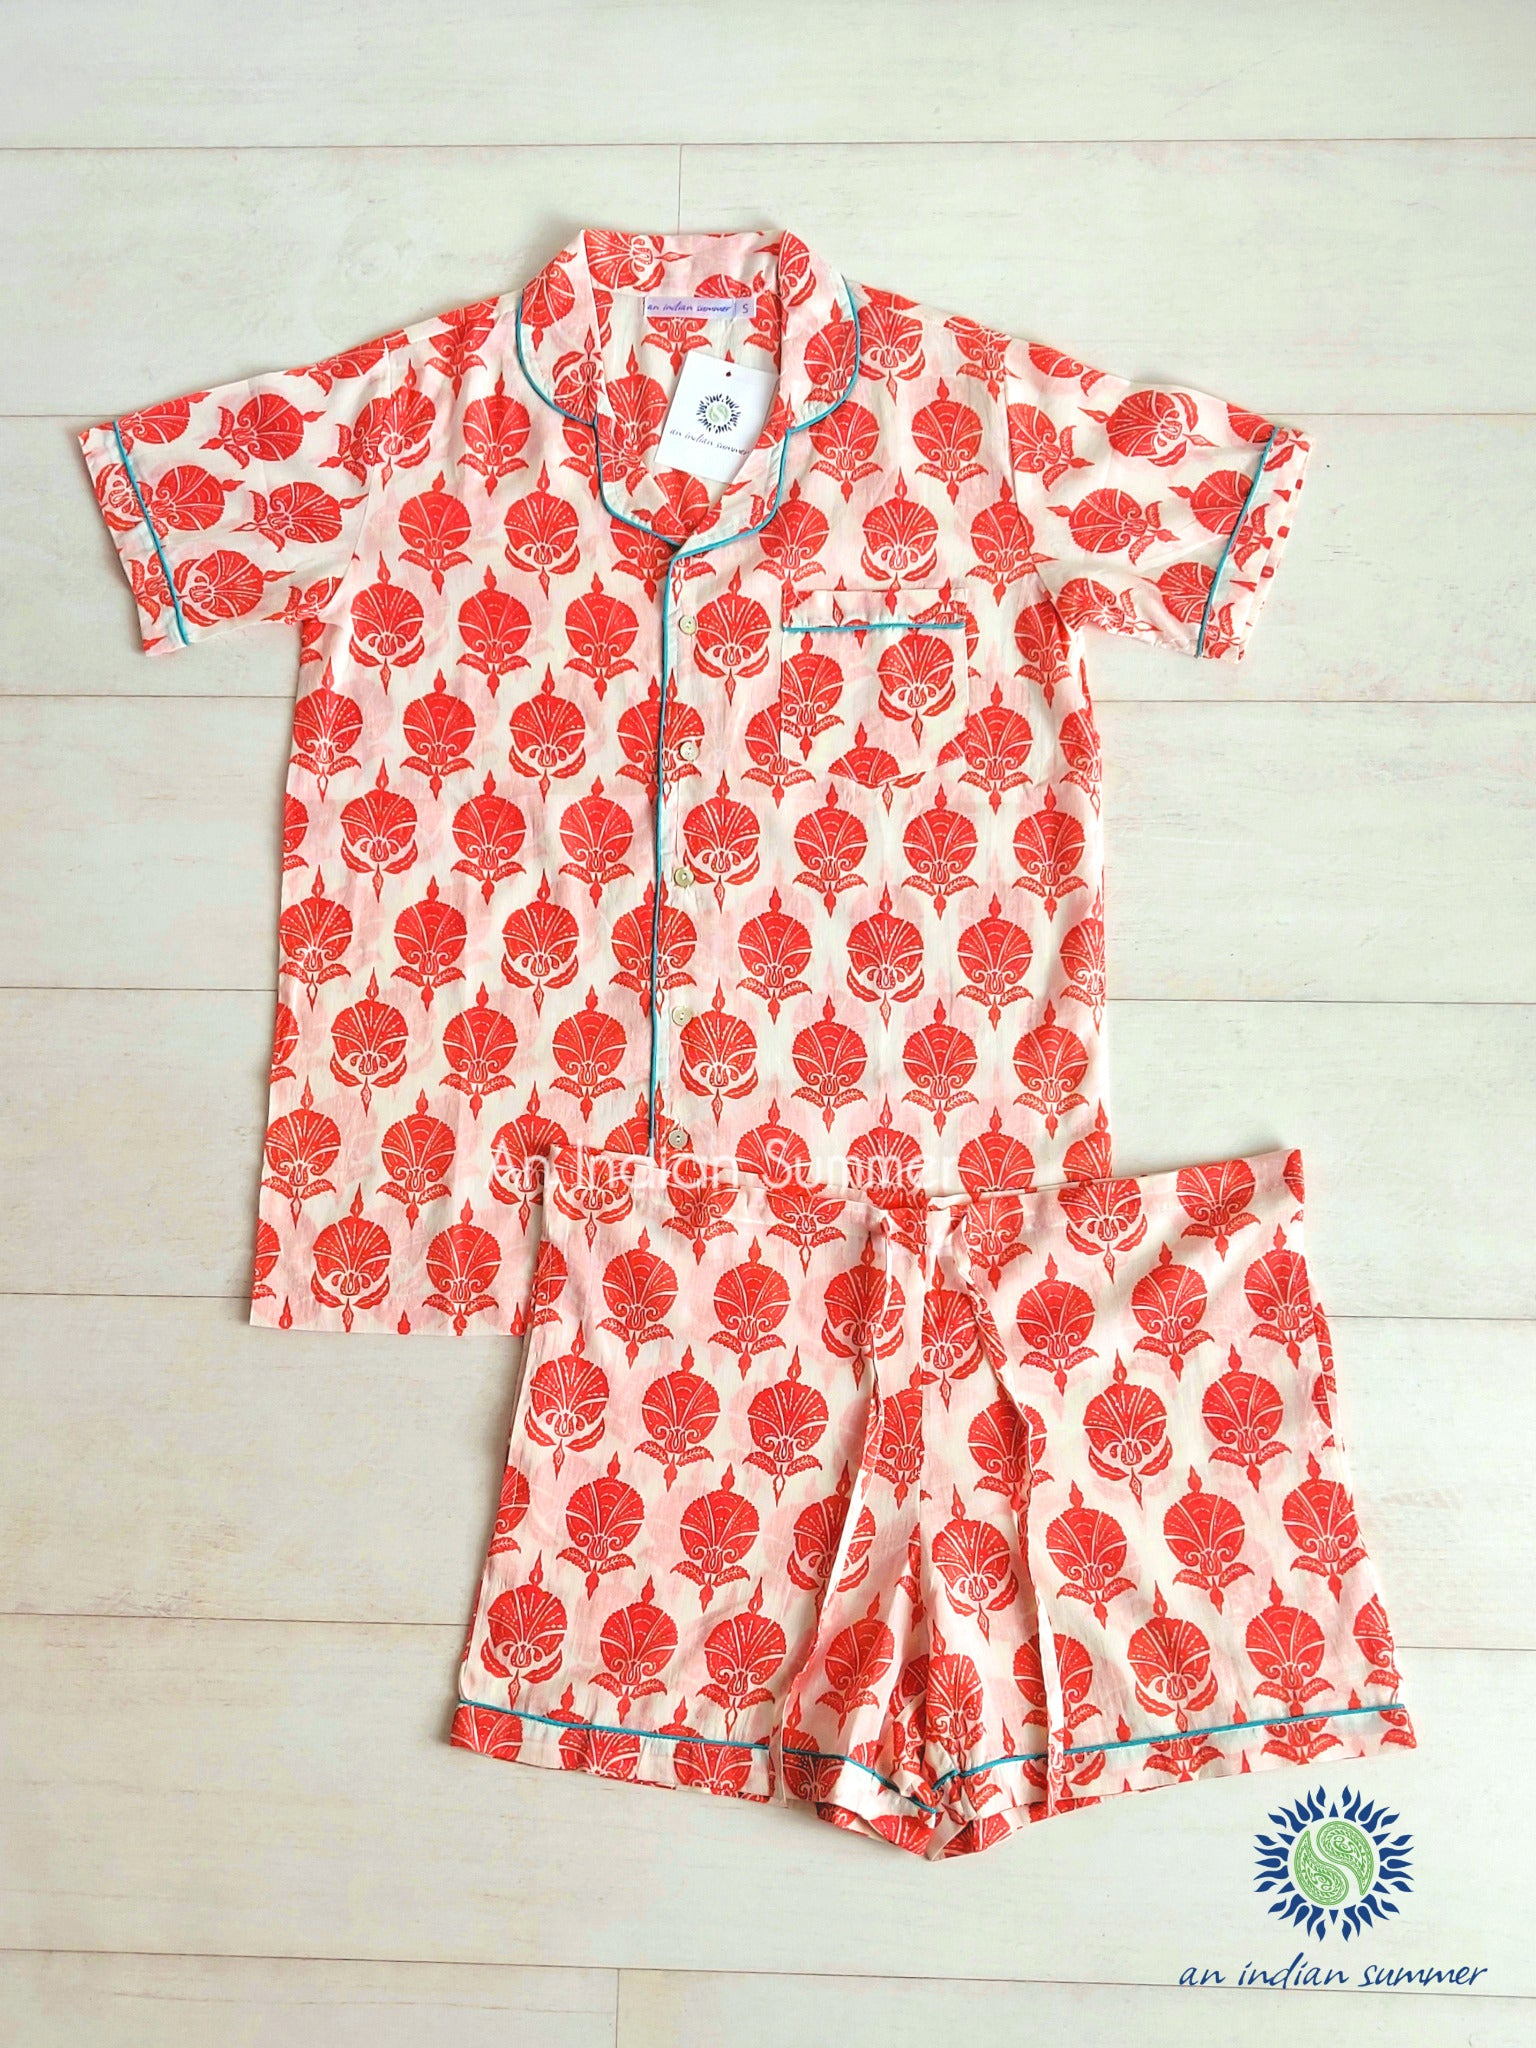 Short Pyjama Set Ottoman Flower | Coral with Turquoise Contrast Details | Hand Block Printed Cotton Voile | An Indian Summer | Authentic Timeless Sustainable Ethical Artisan Conscious Responsible Clothing